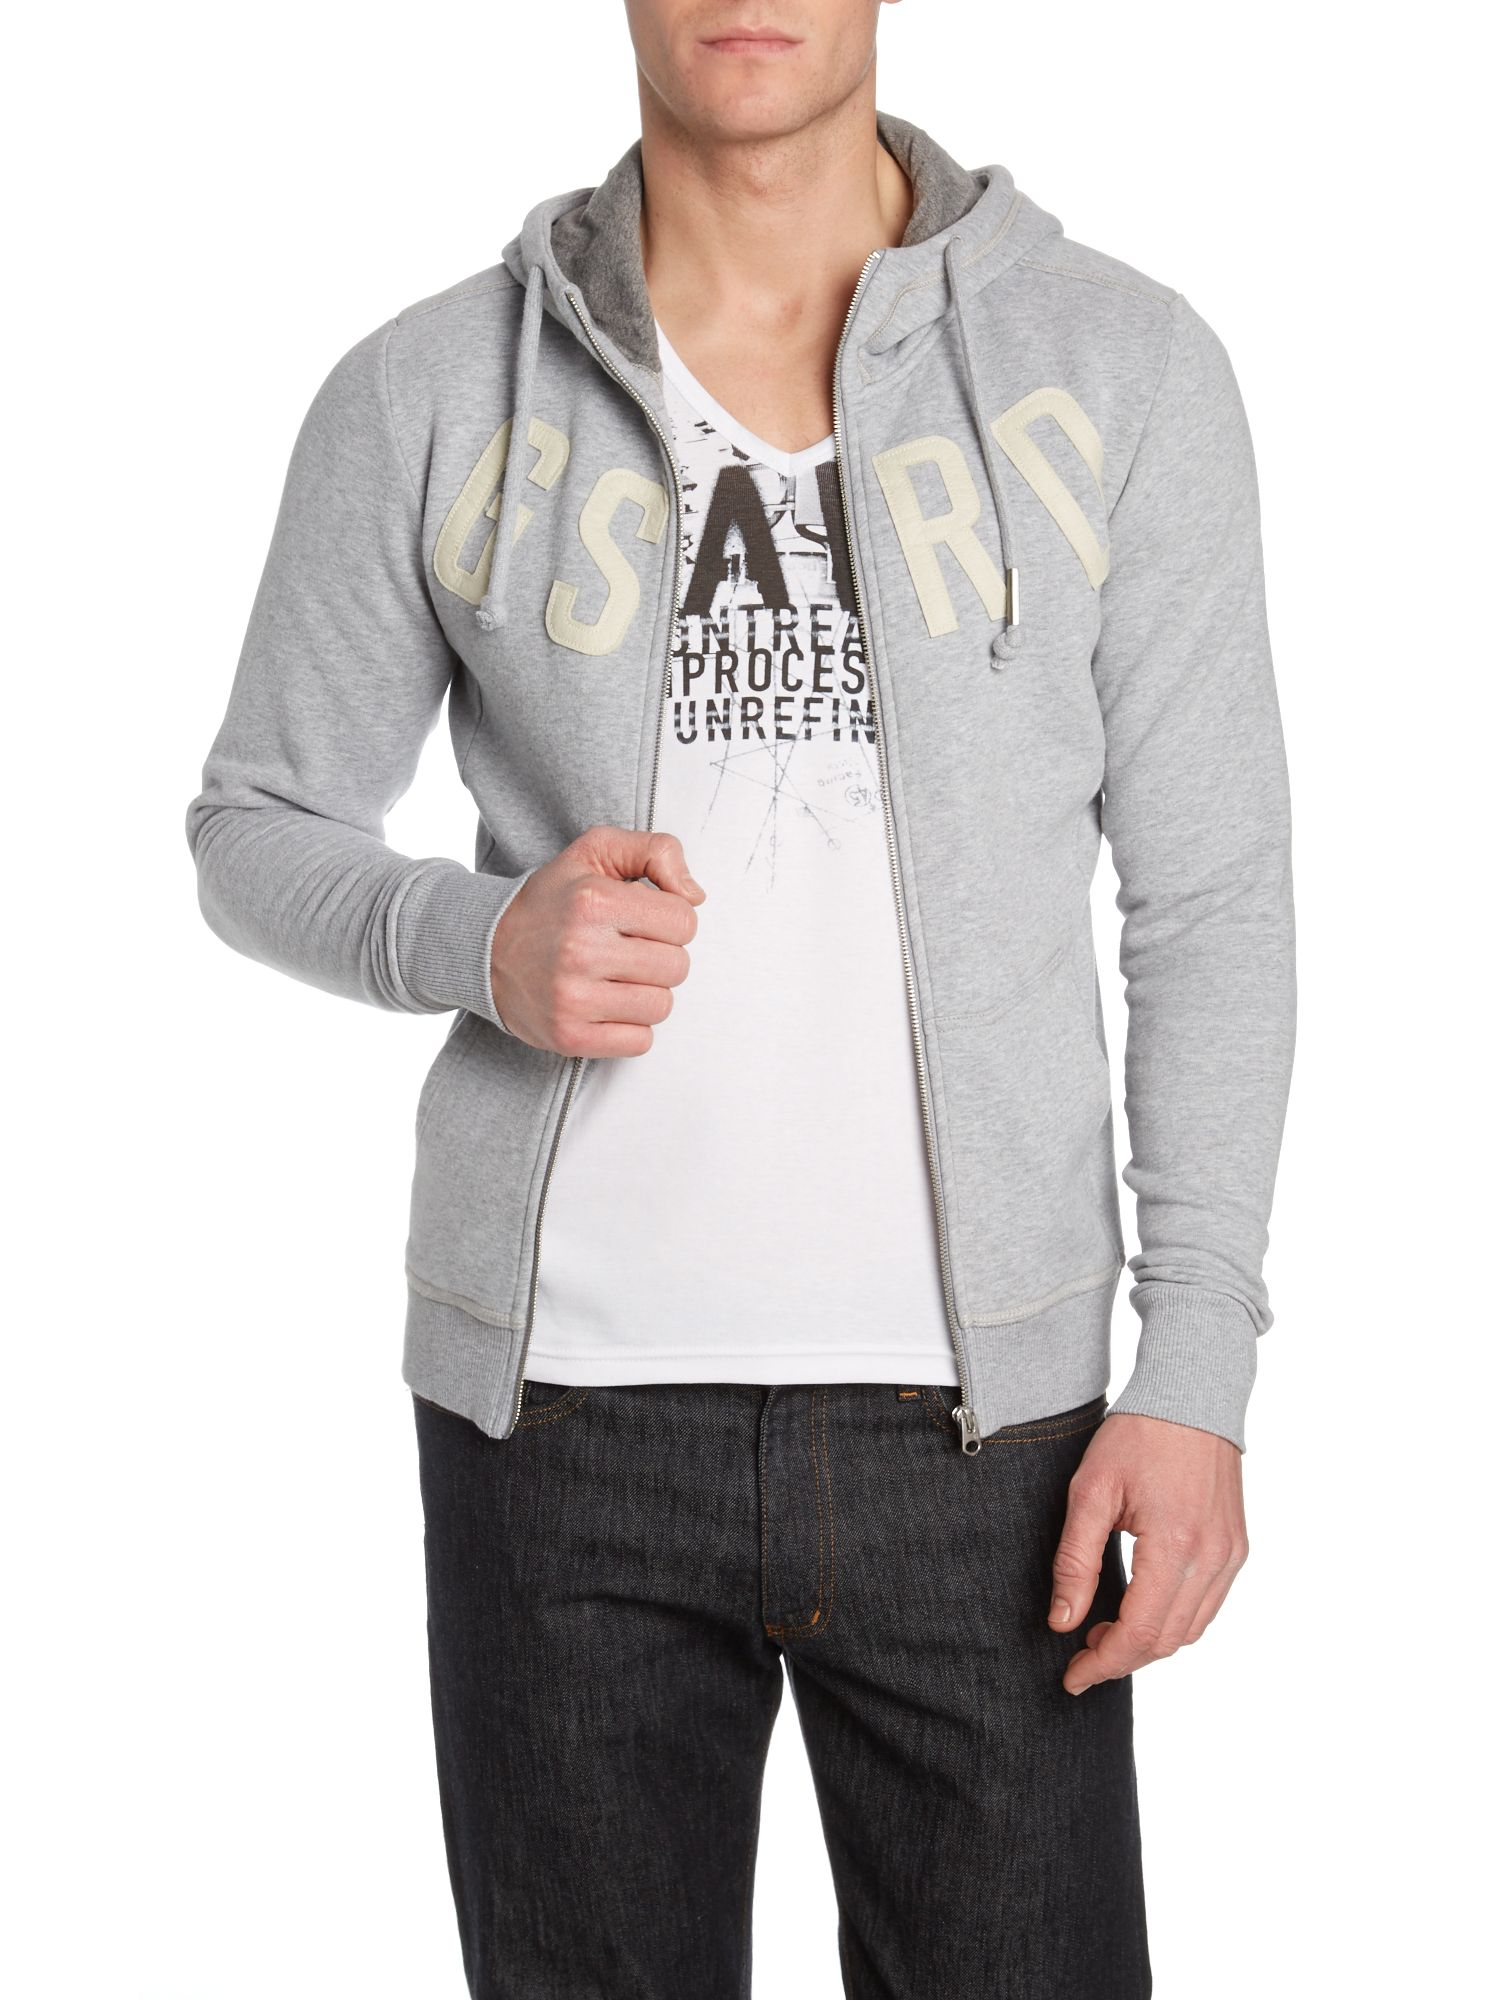 g star raw hooded logo sweatshirt in gray for men grey. Black Bedroom Furniture Sets. Home Design Ideas